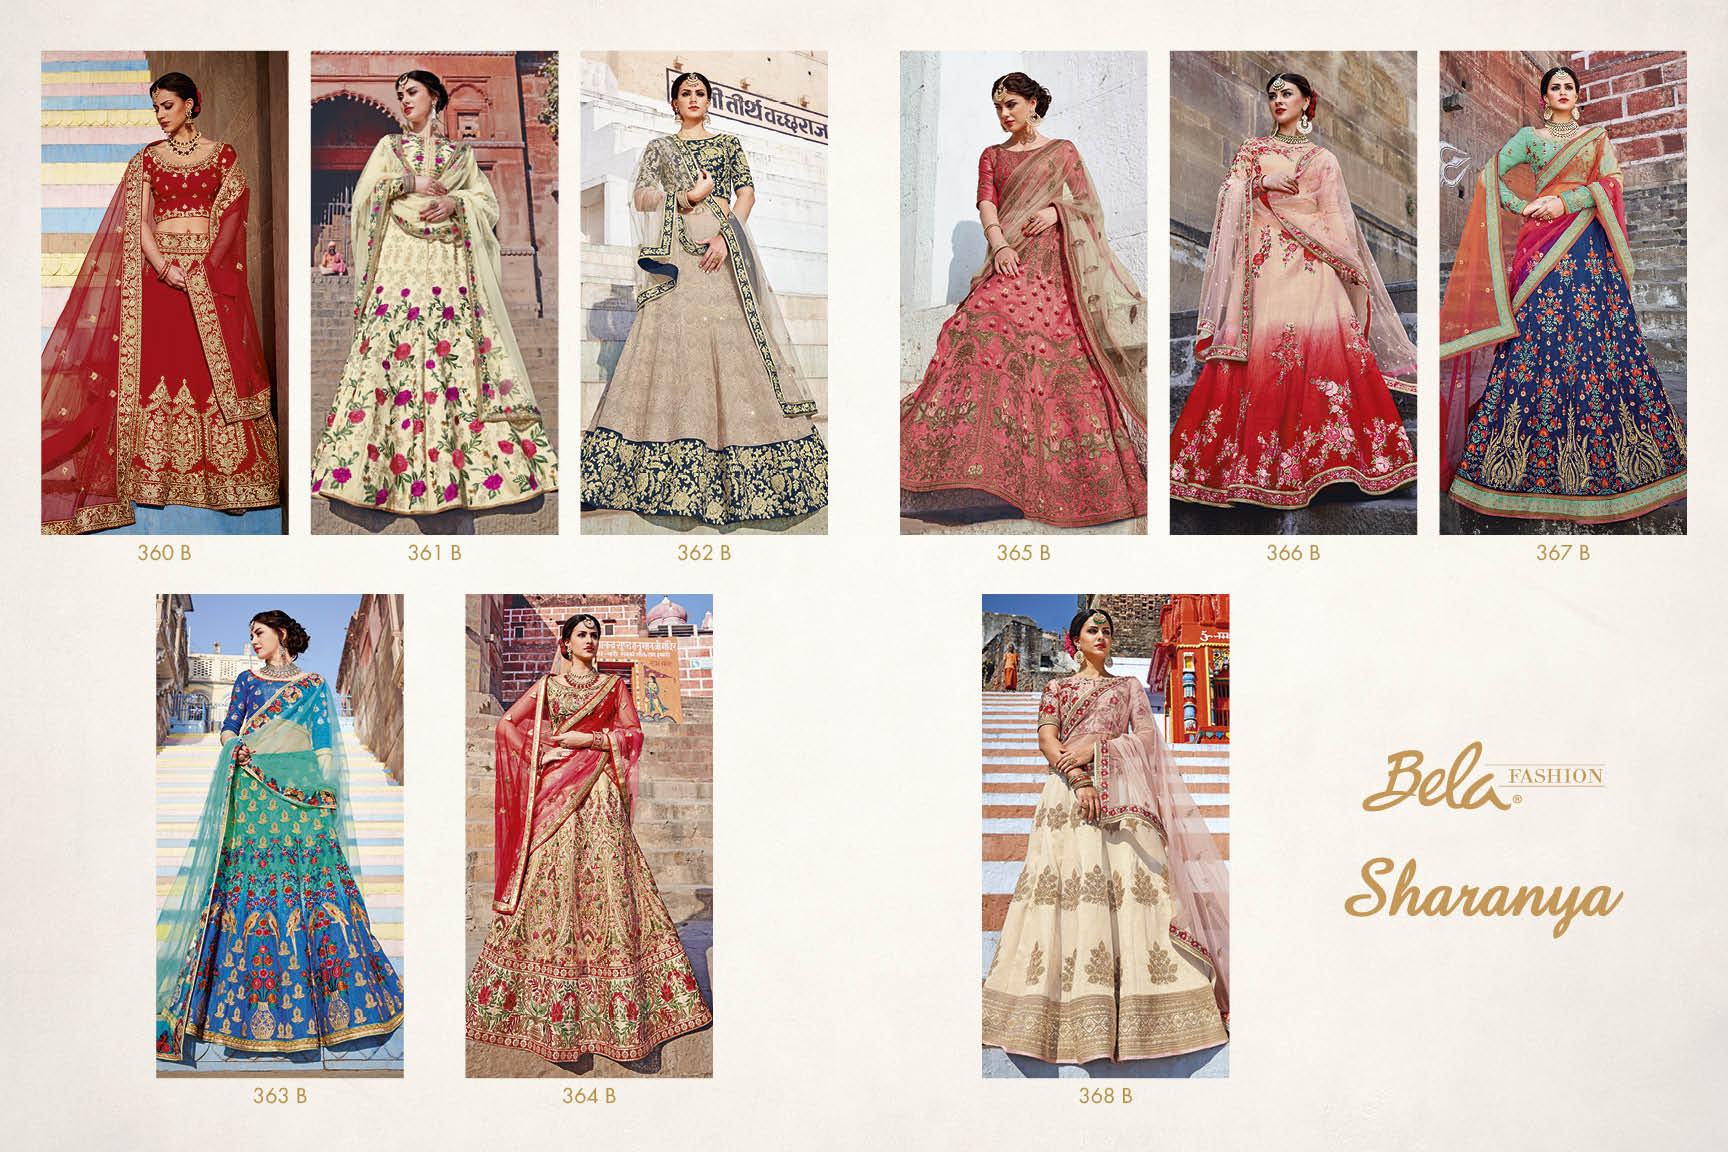 Shop Bela Fashion's Sharanya Bridal Lehenga Online